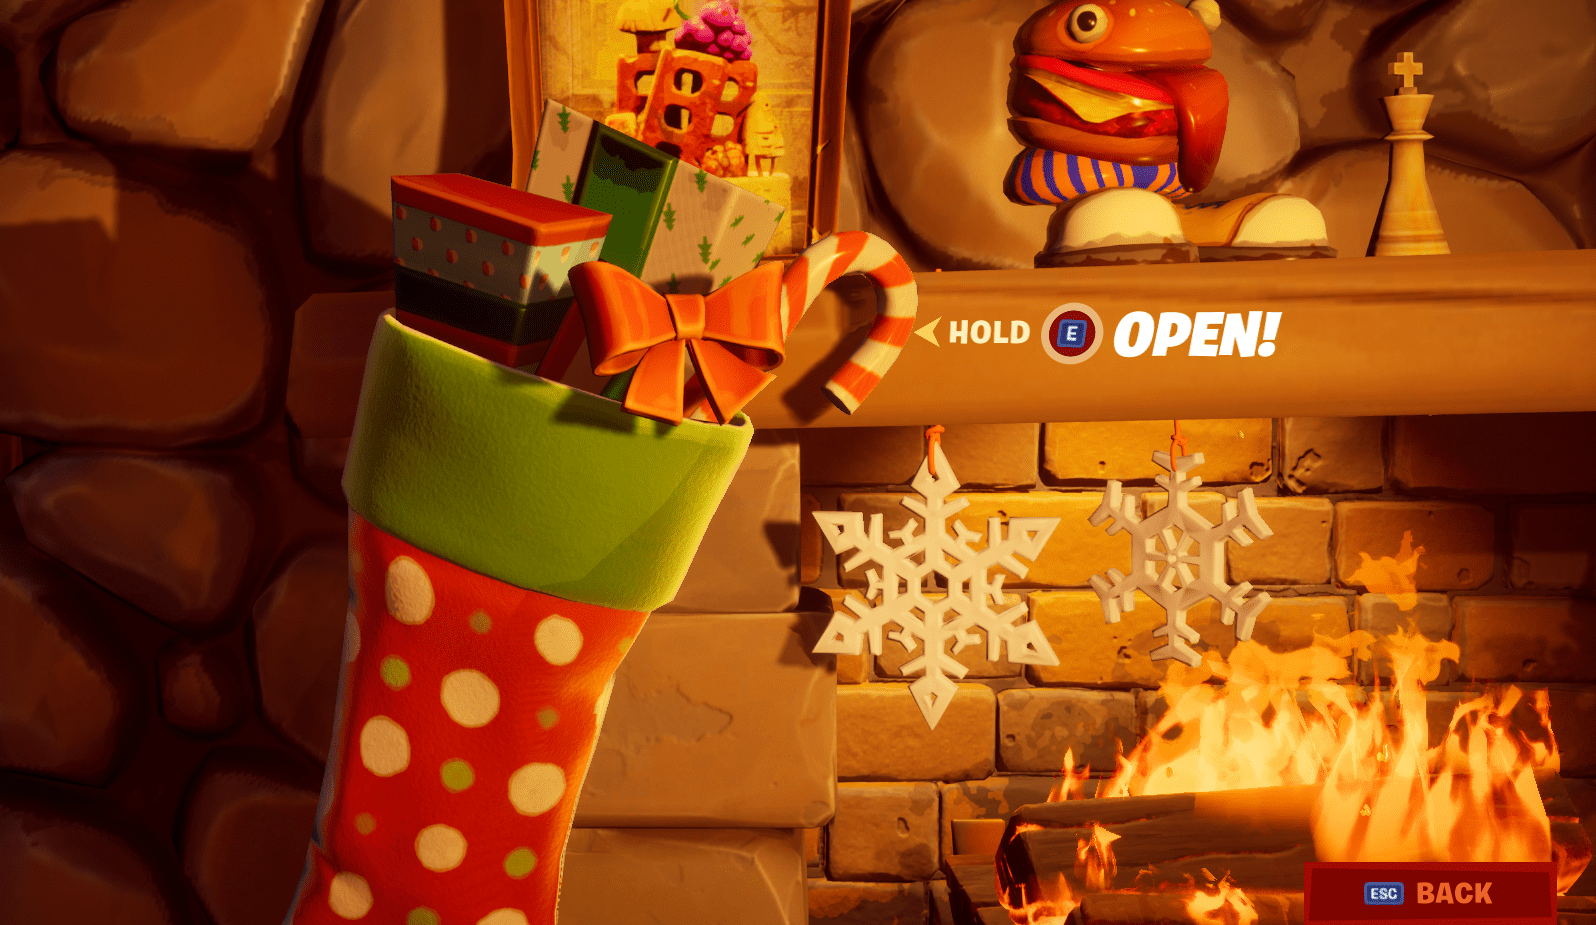 Fortnite Search the Holiday Stockings in the Winterfest Cabin